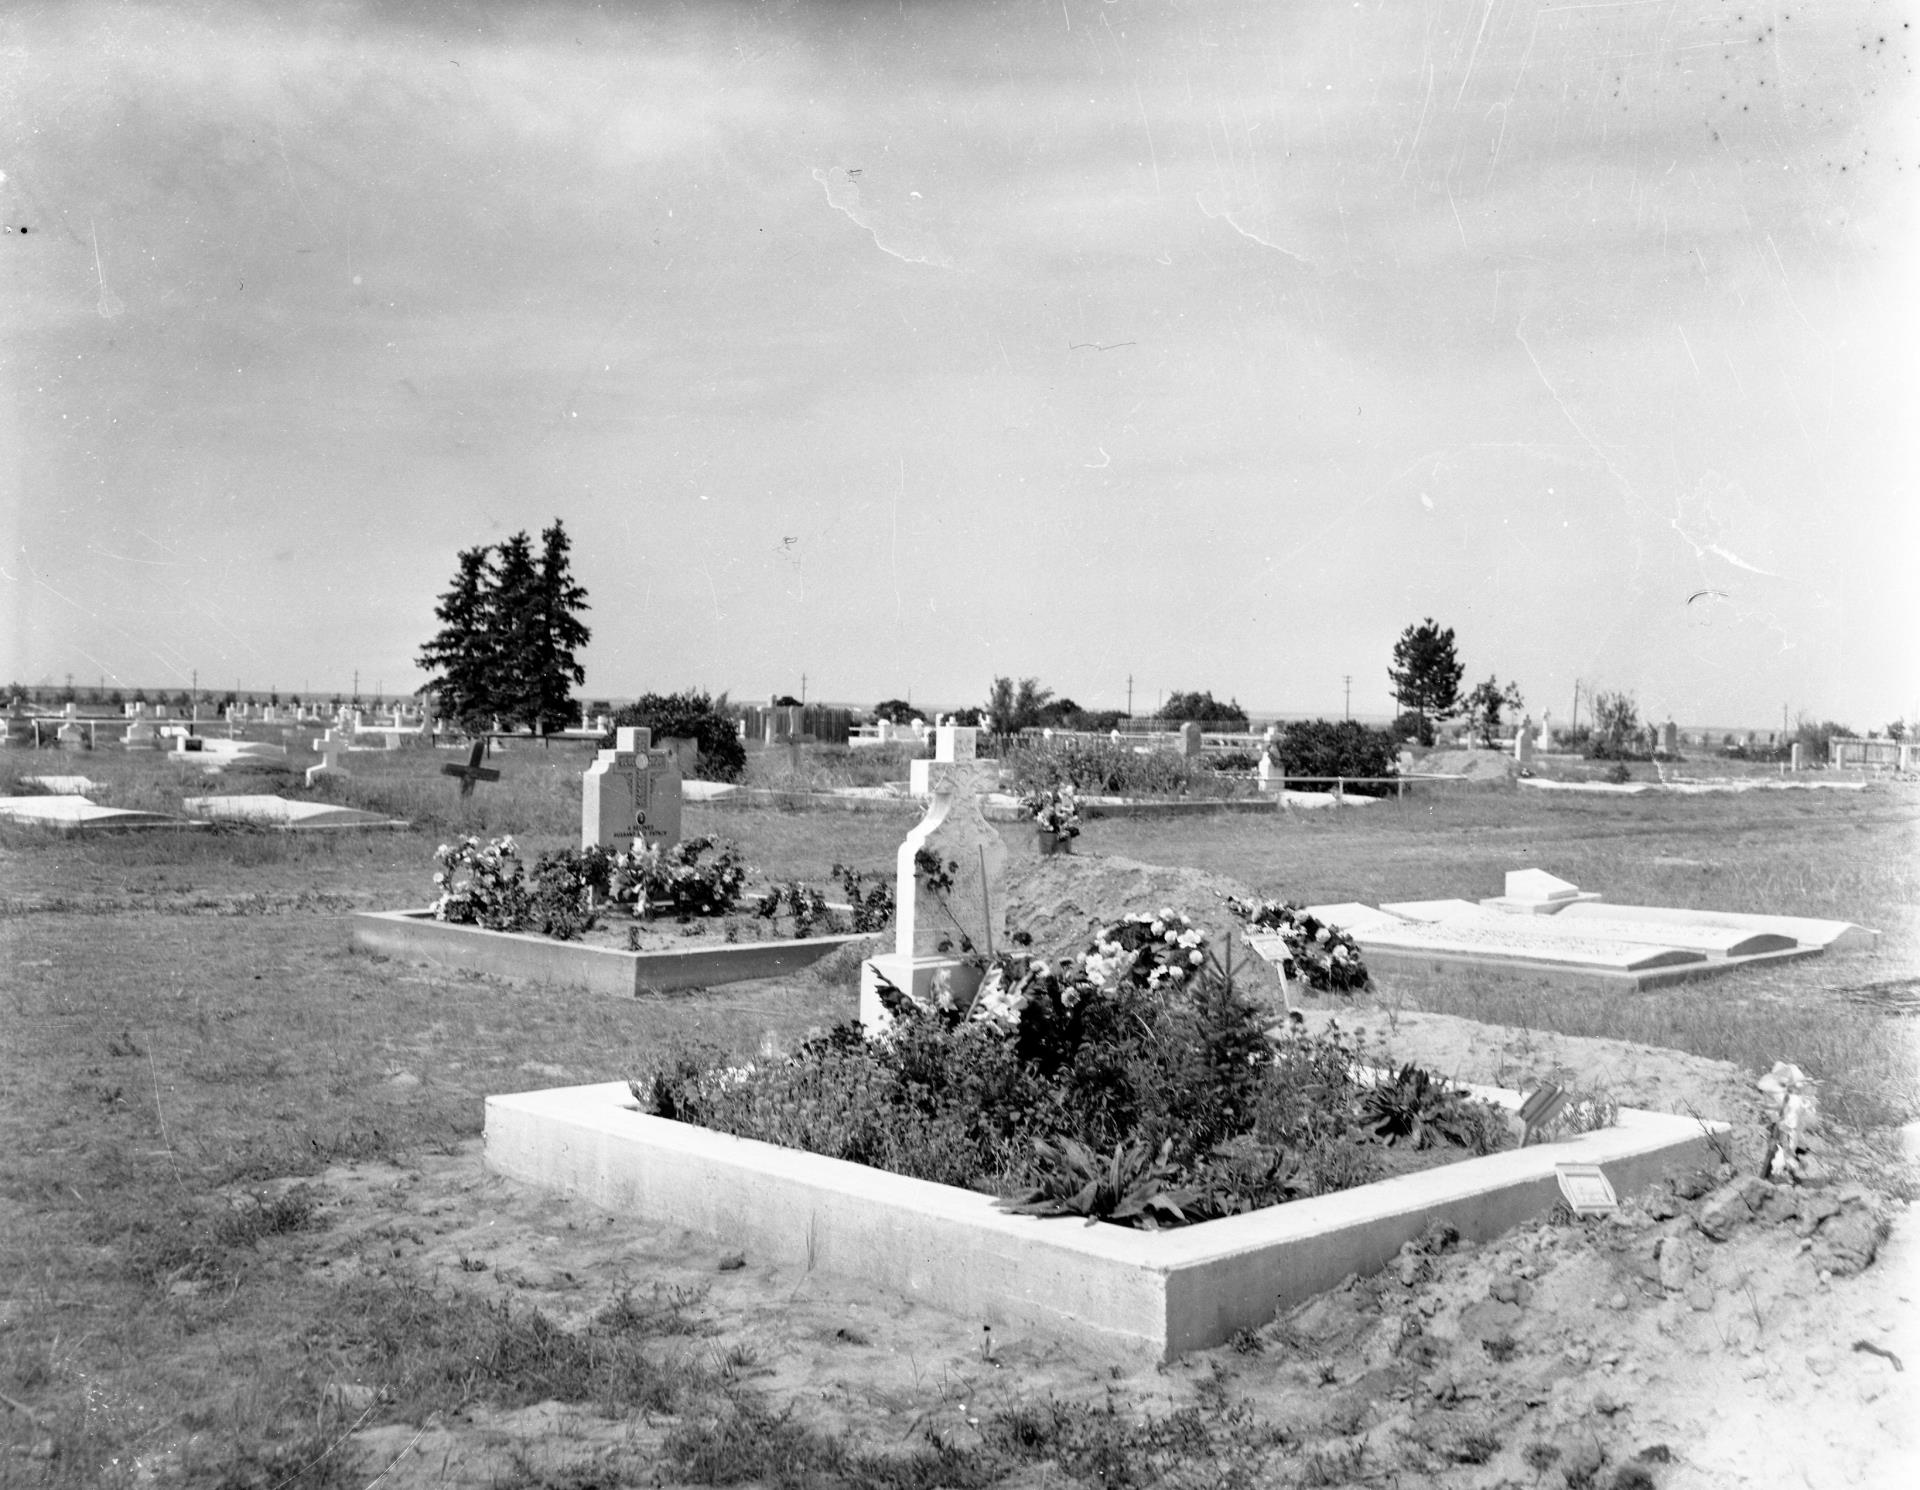 Taber Memorial Gardens Historic Photo courtesy of the Taber Irrigation Impact Museum